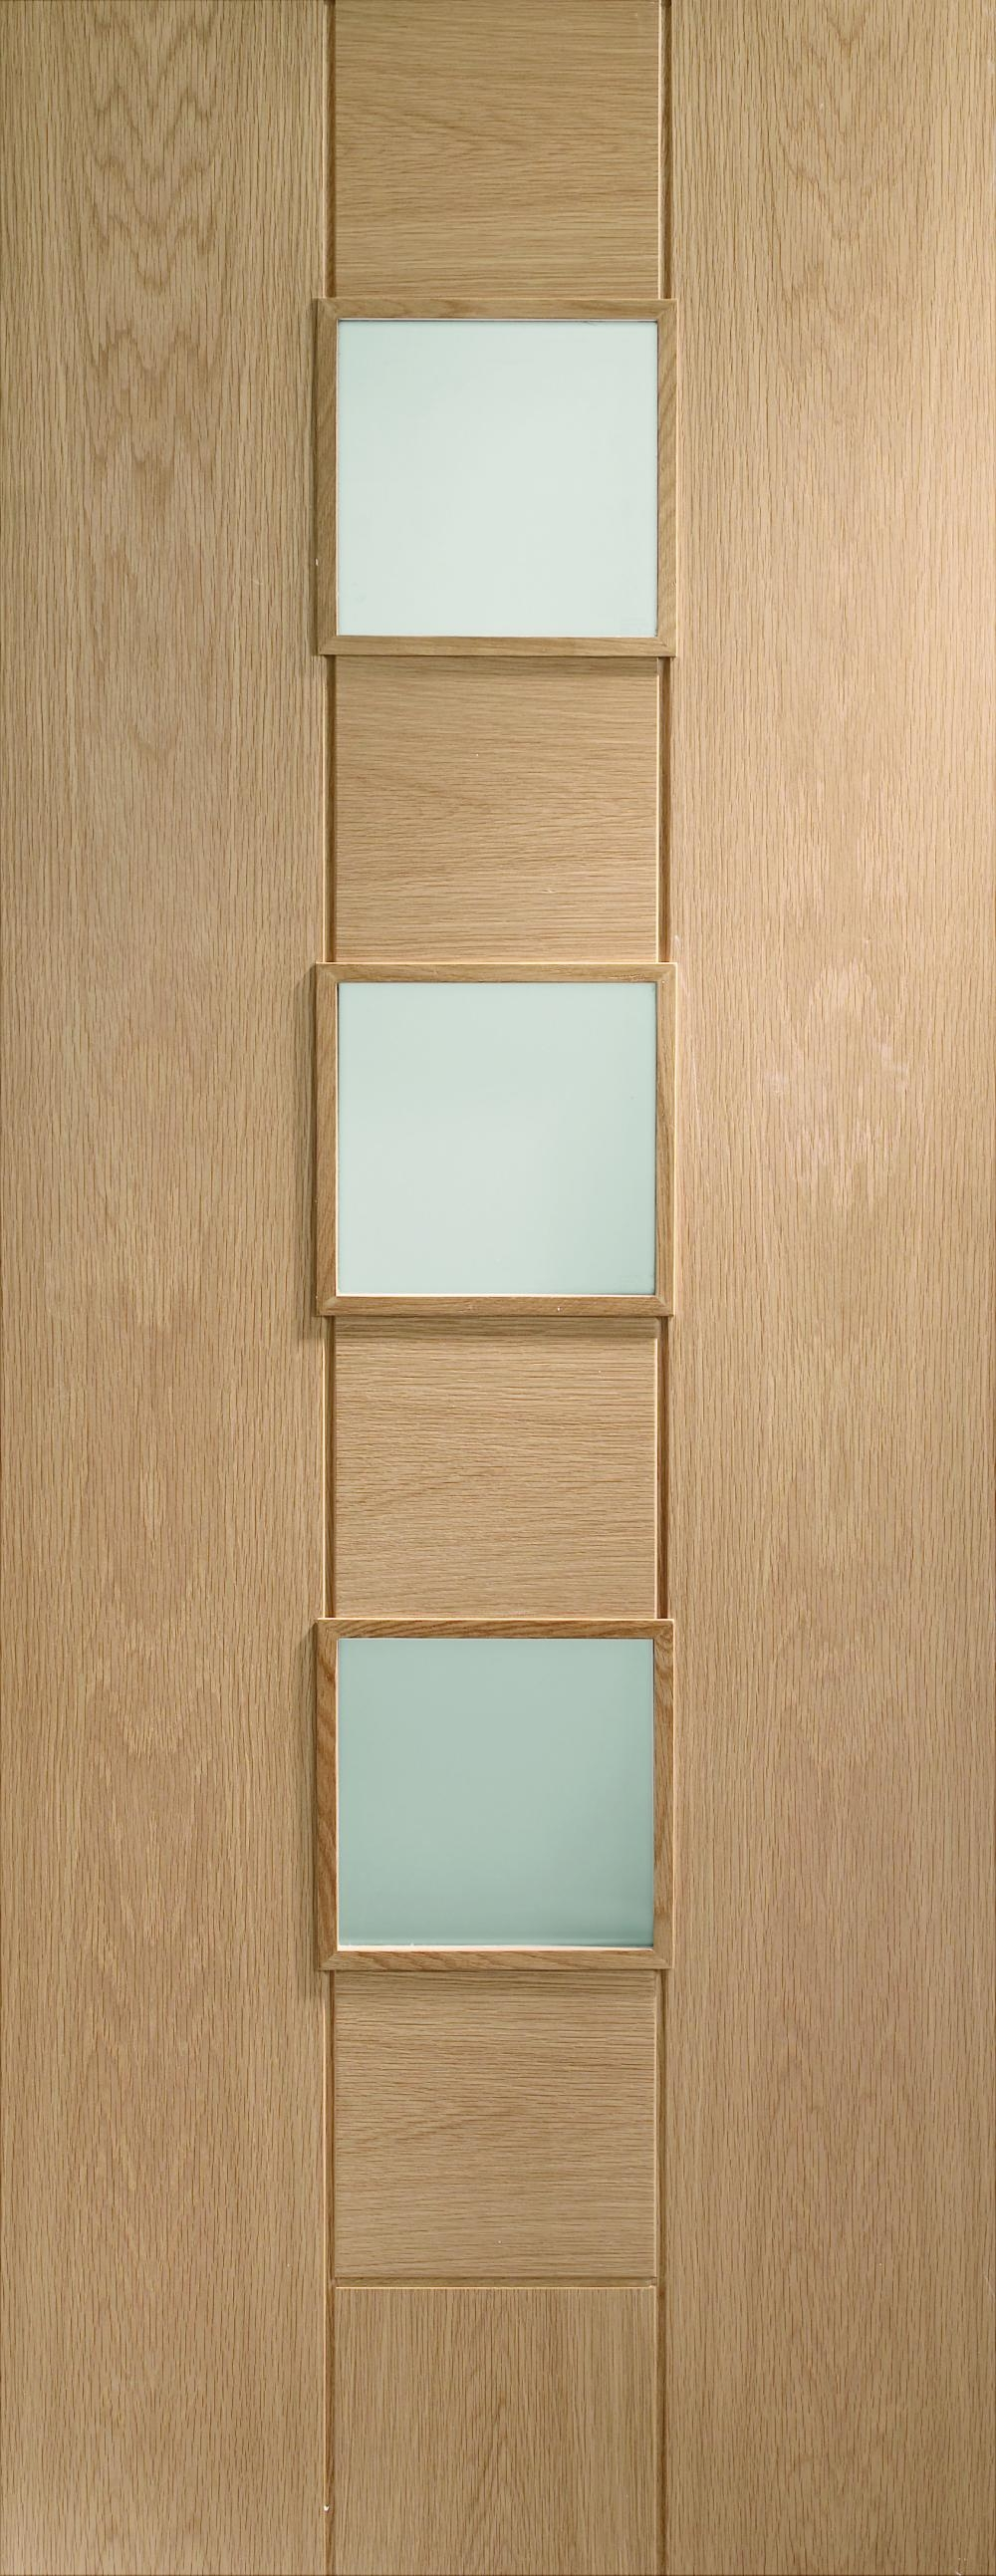 Messina Oak - PREFINISHED Clear Glass:  Image